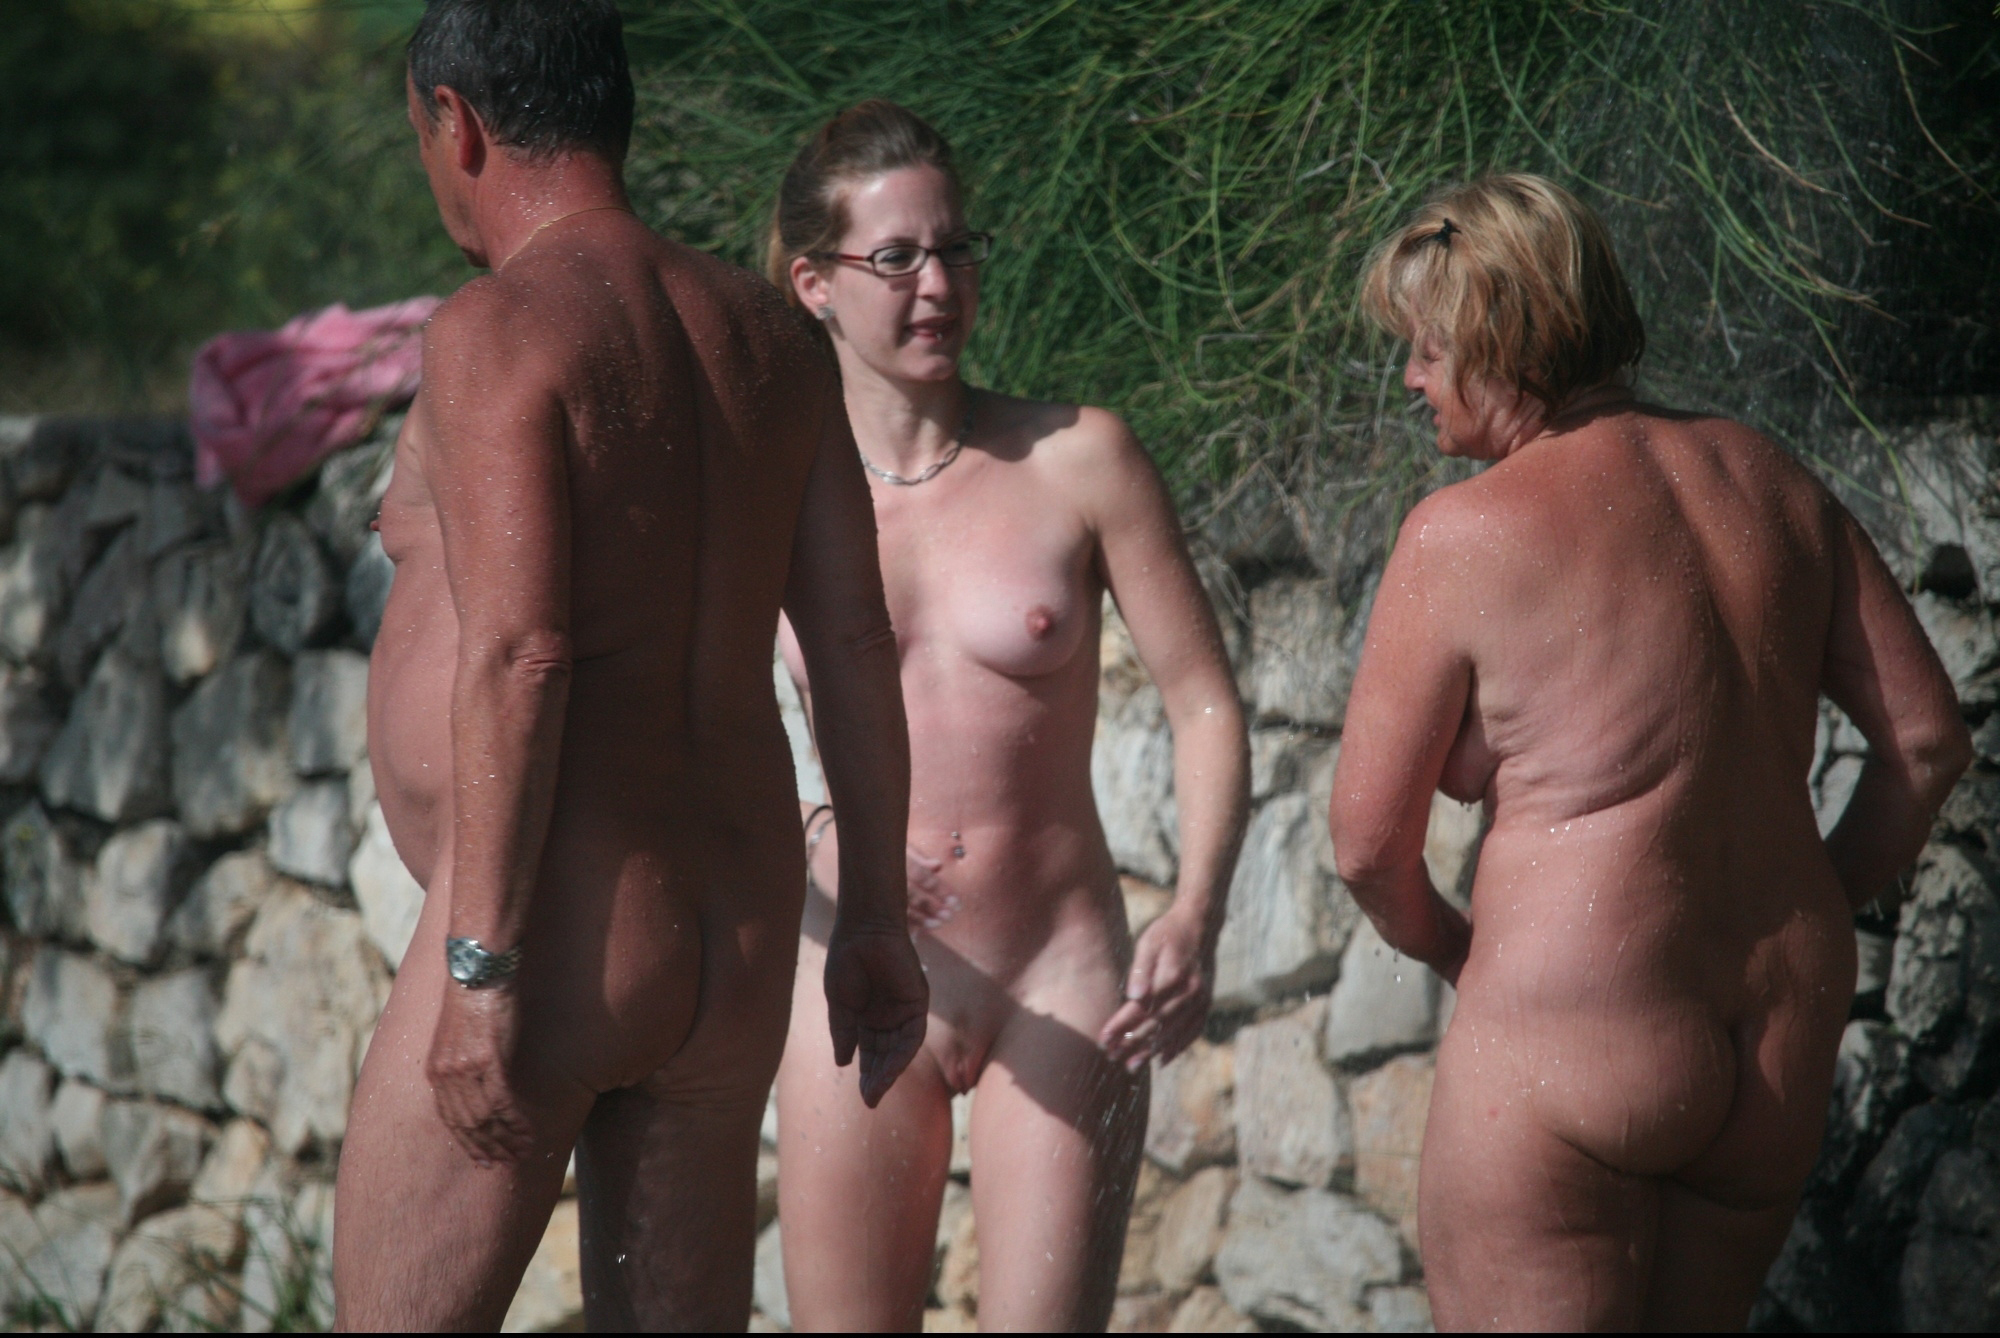 Nude family feel, group male sex